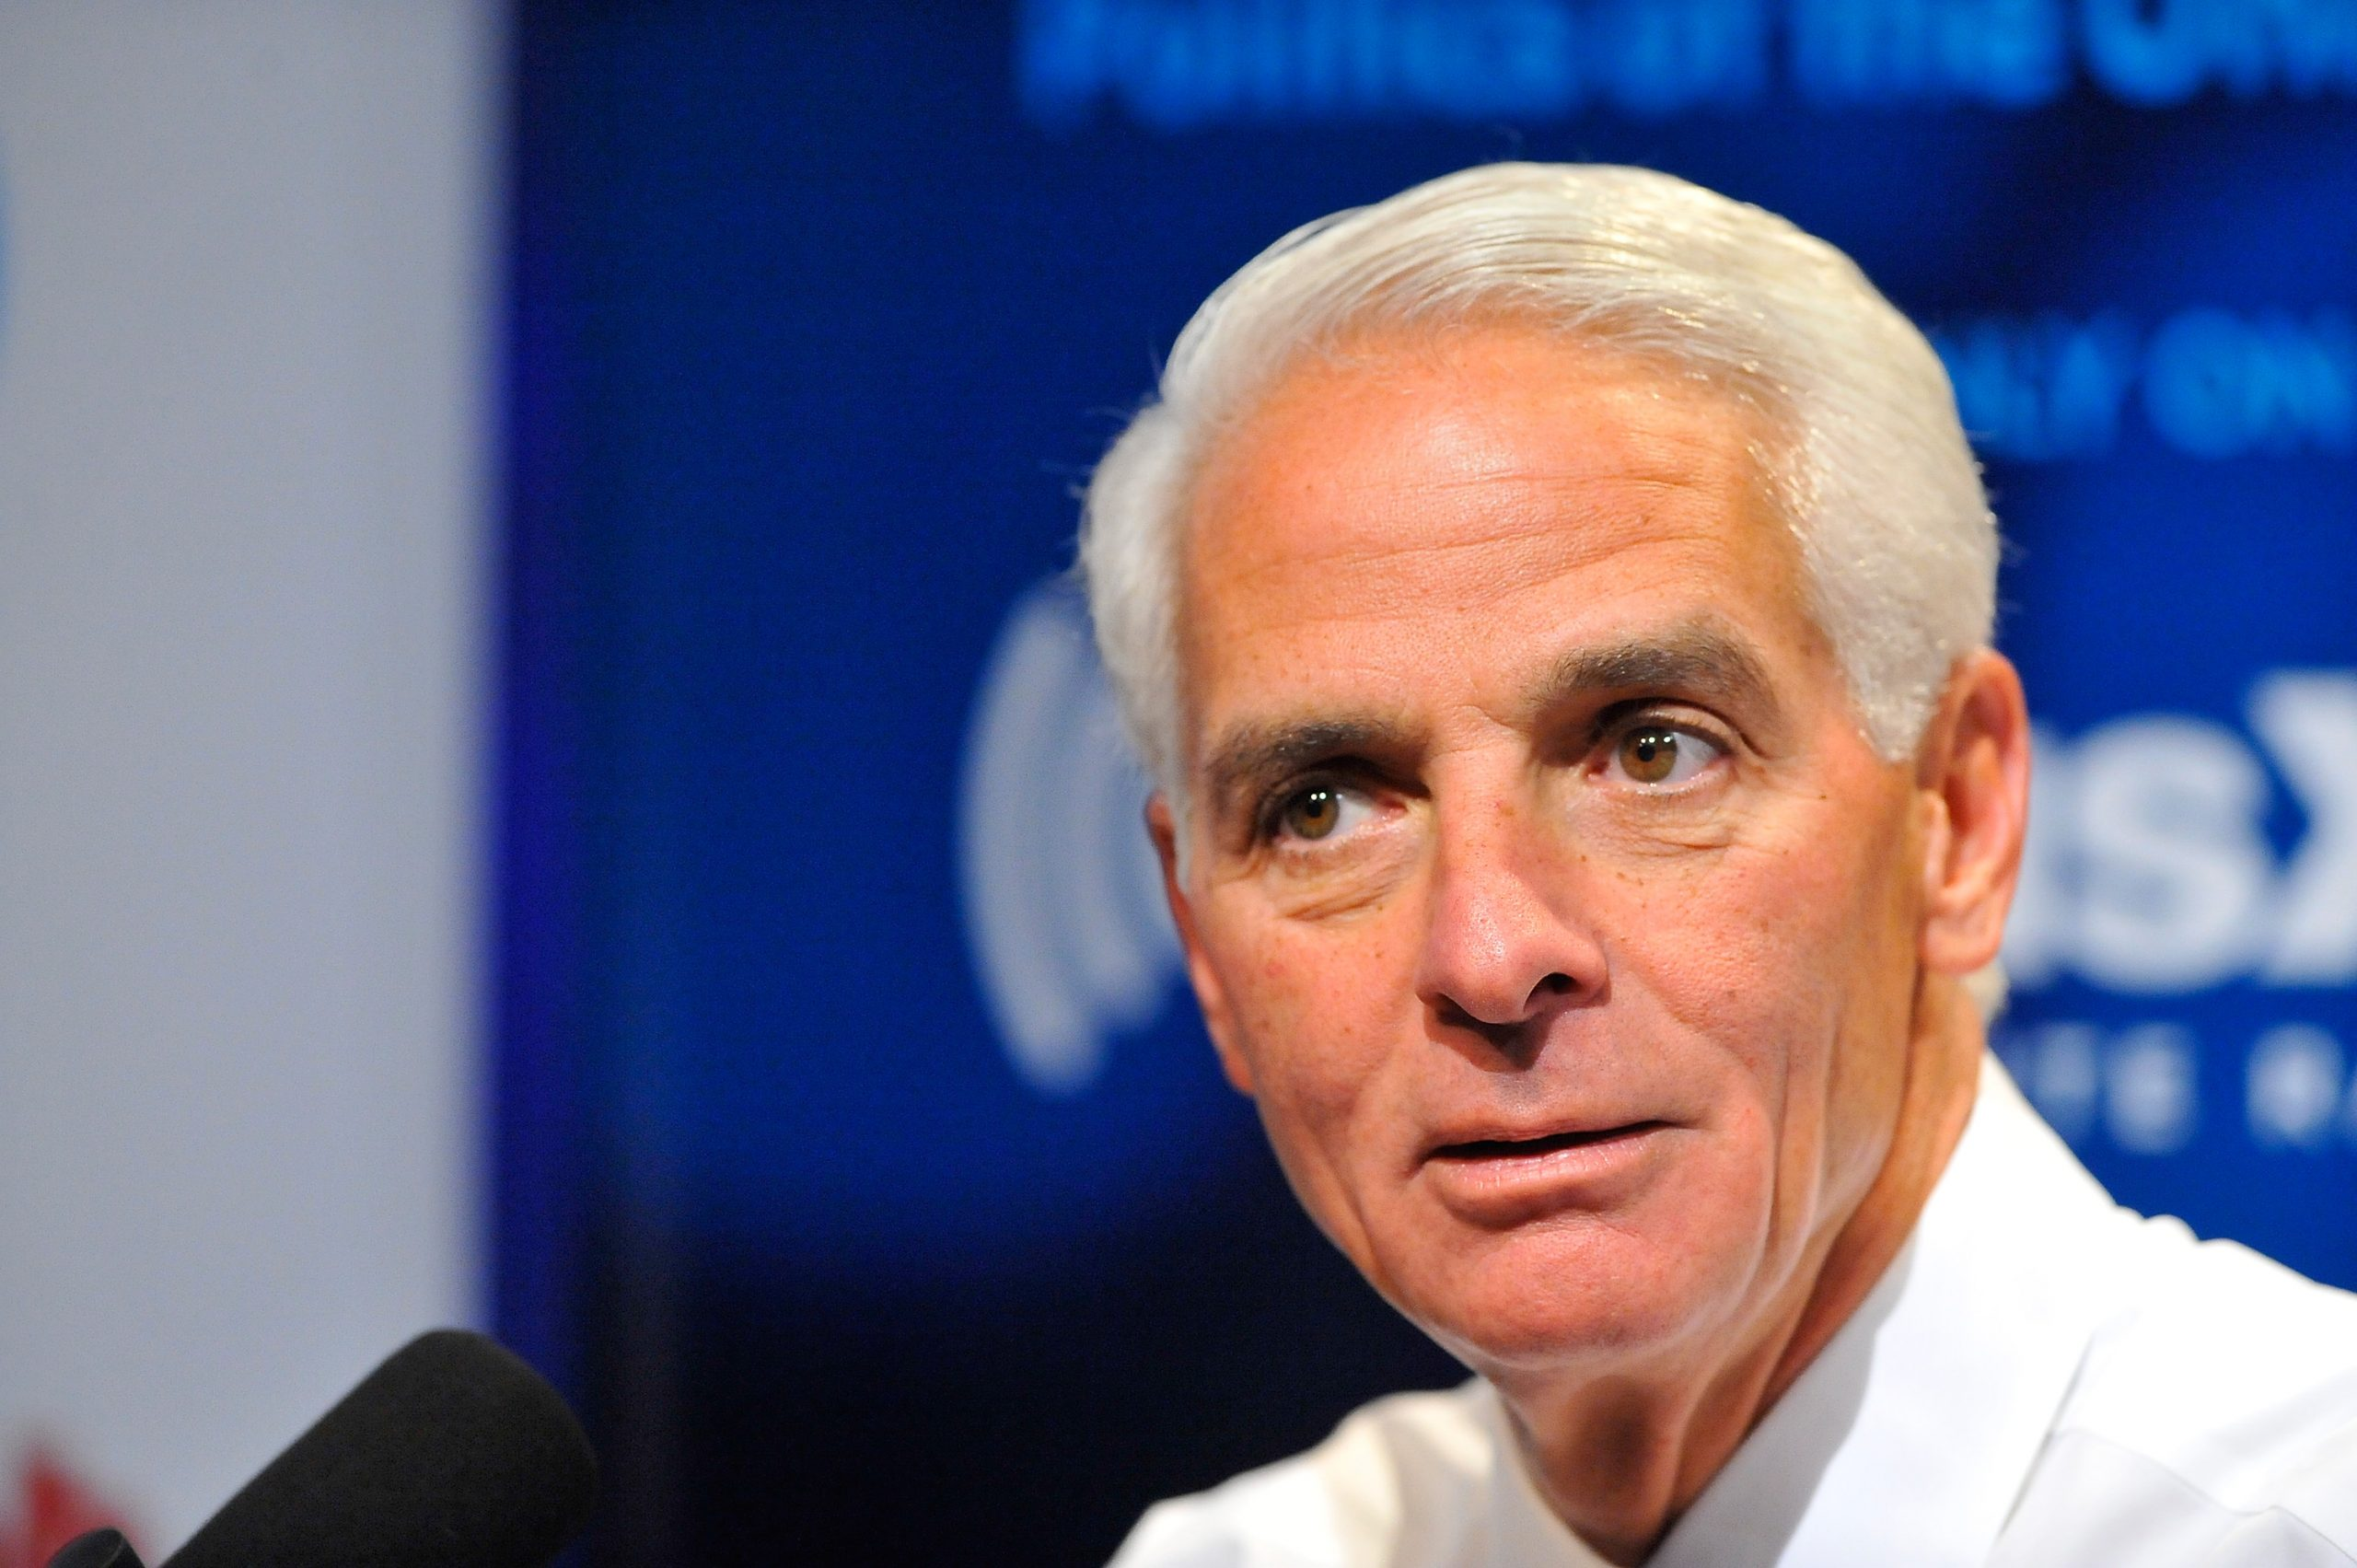 Florida's Crist making third run for governor, second as Democrat